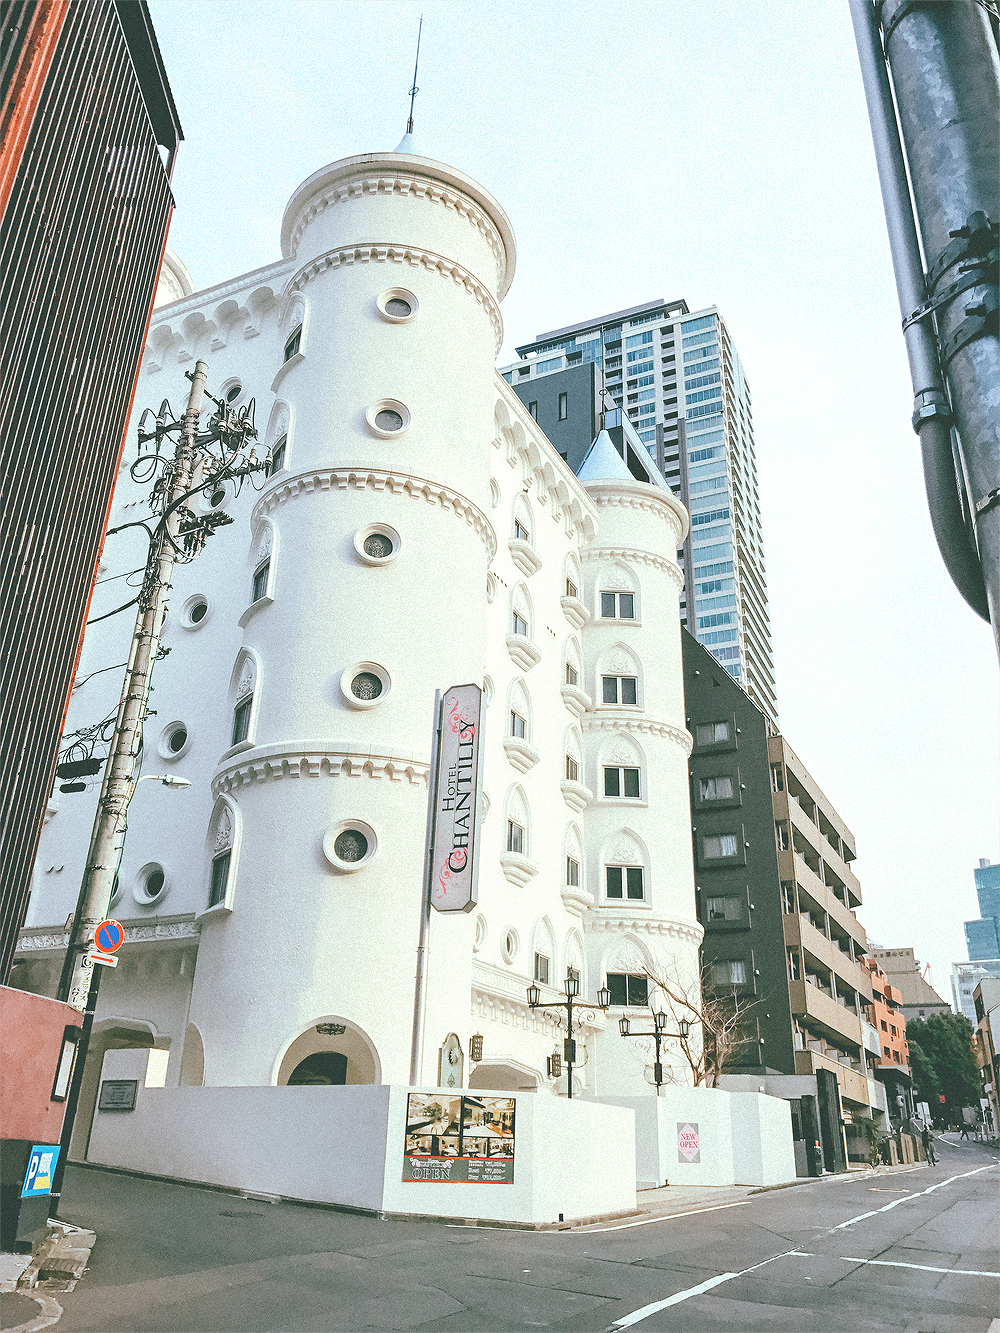 """Walking back to the station we passed this cute hotel with a European castle inspired exterior. Without realizing, I took a photo of a """"love hotel"""", which is meant for casual sex. As it turns out, they charge hourly or overnight for their state of the art themed rooms. This is not as uncommon as you think."""